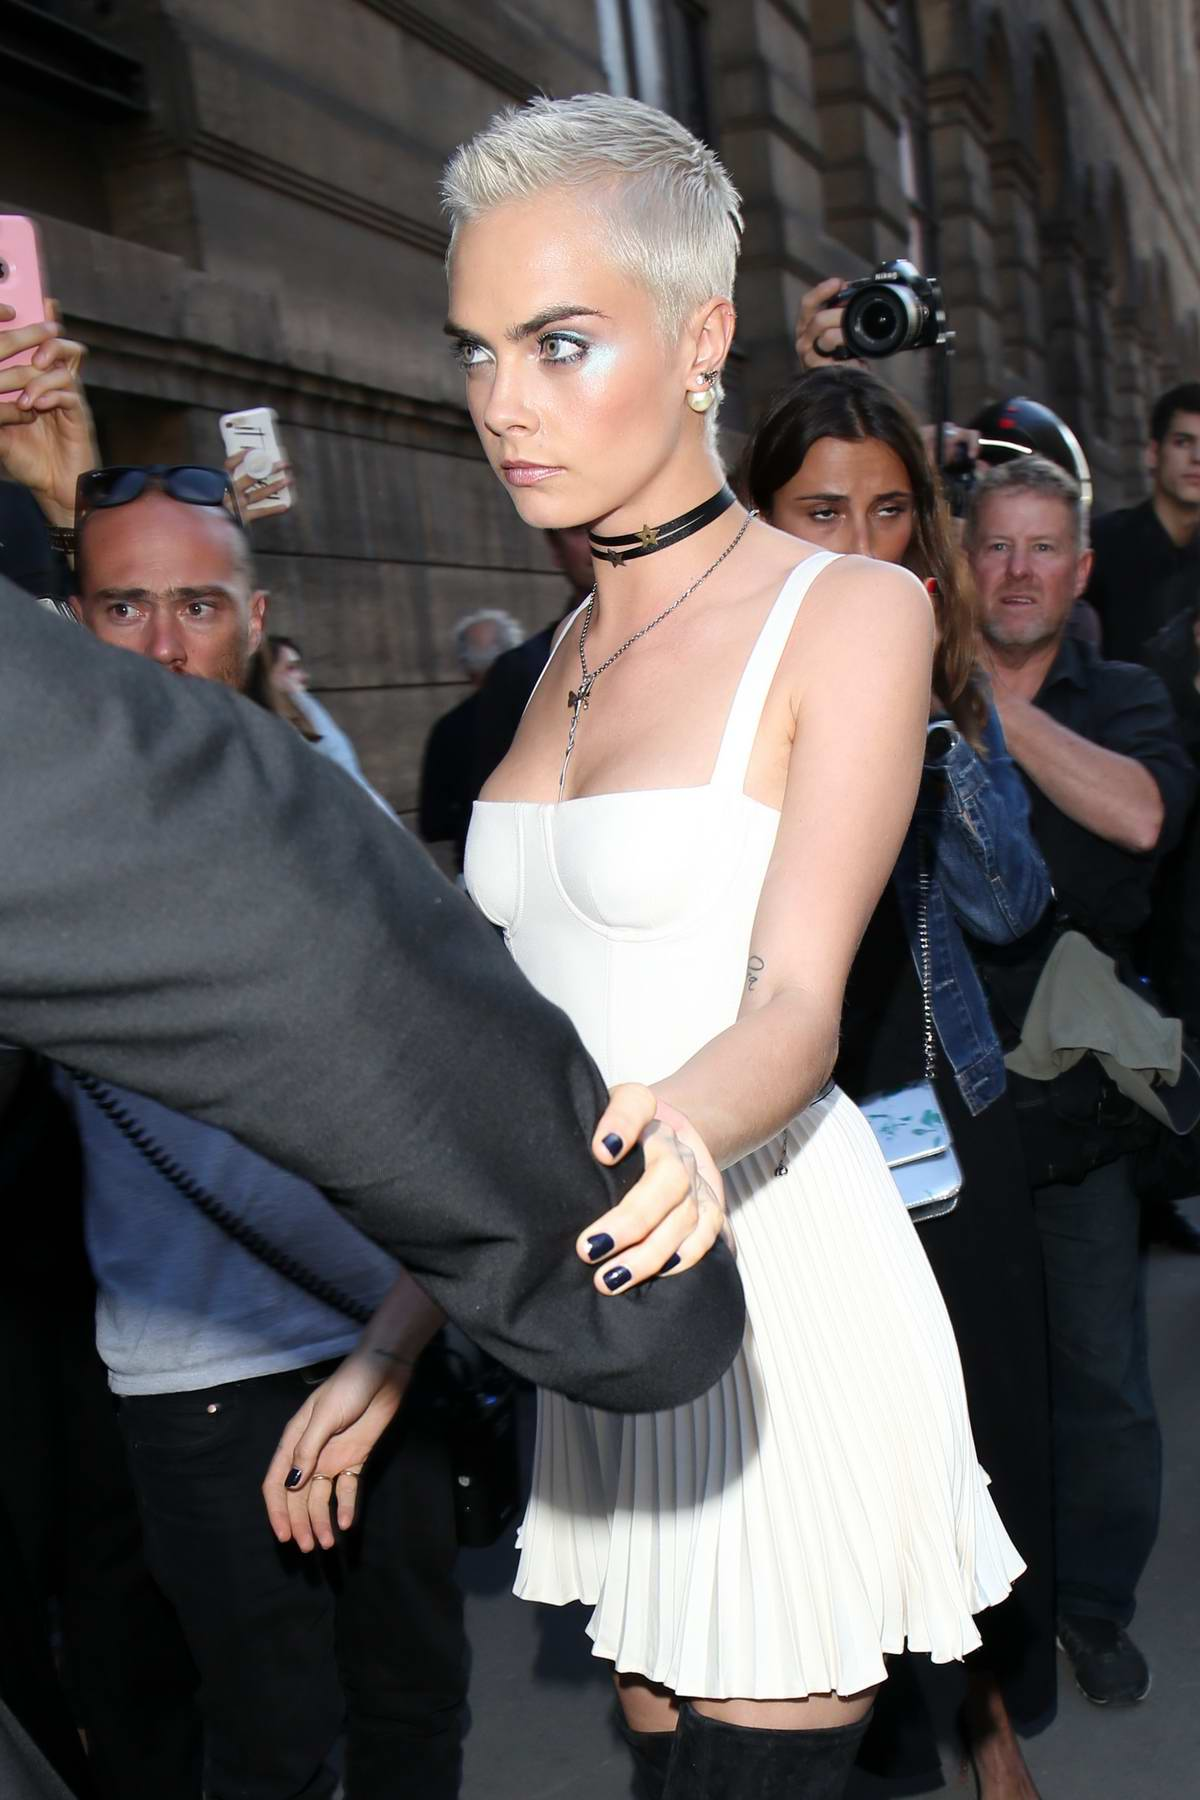 Cara Delevingne Out and About during Haute Couture Fashion Week in Paris, France